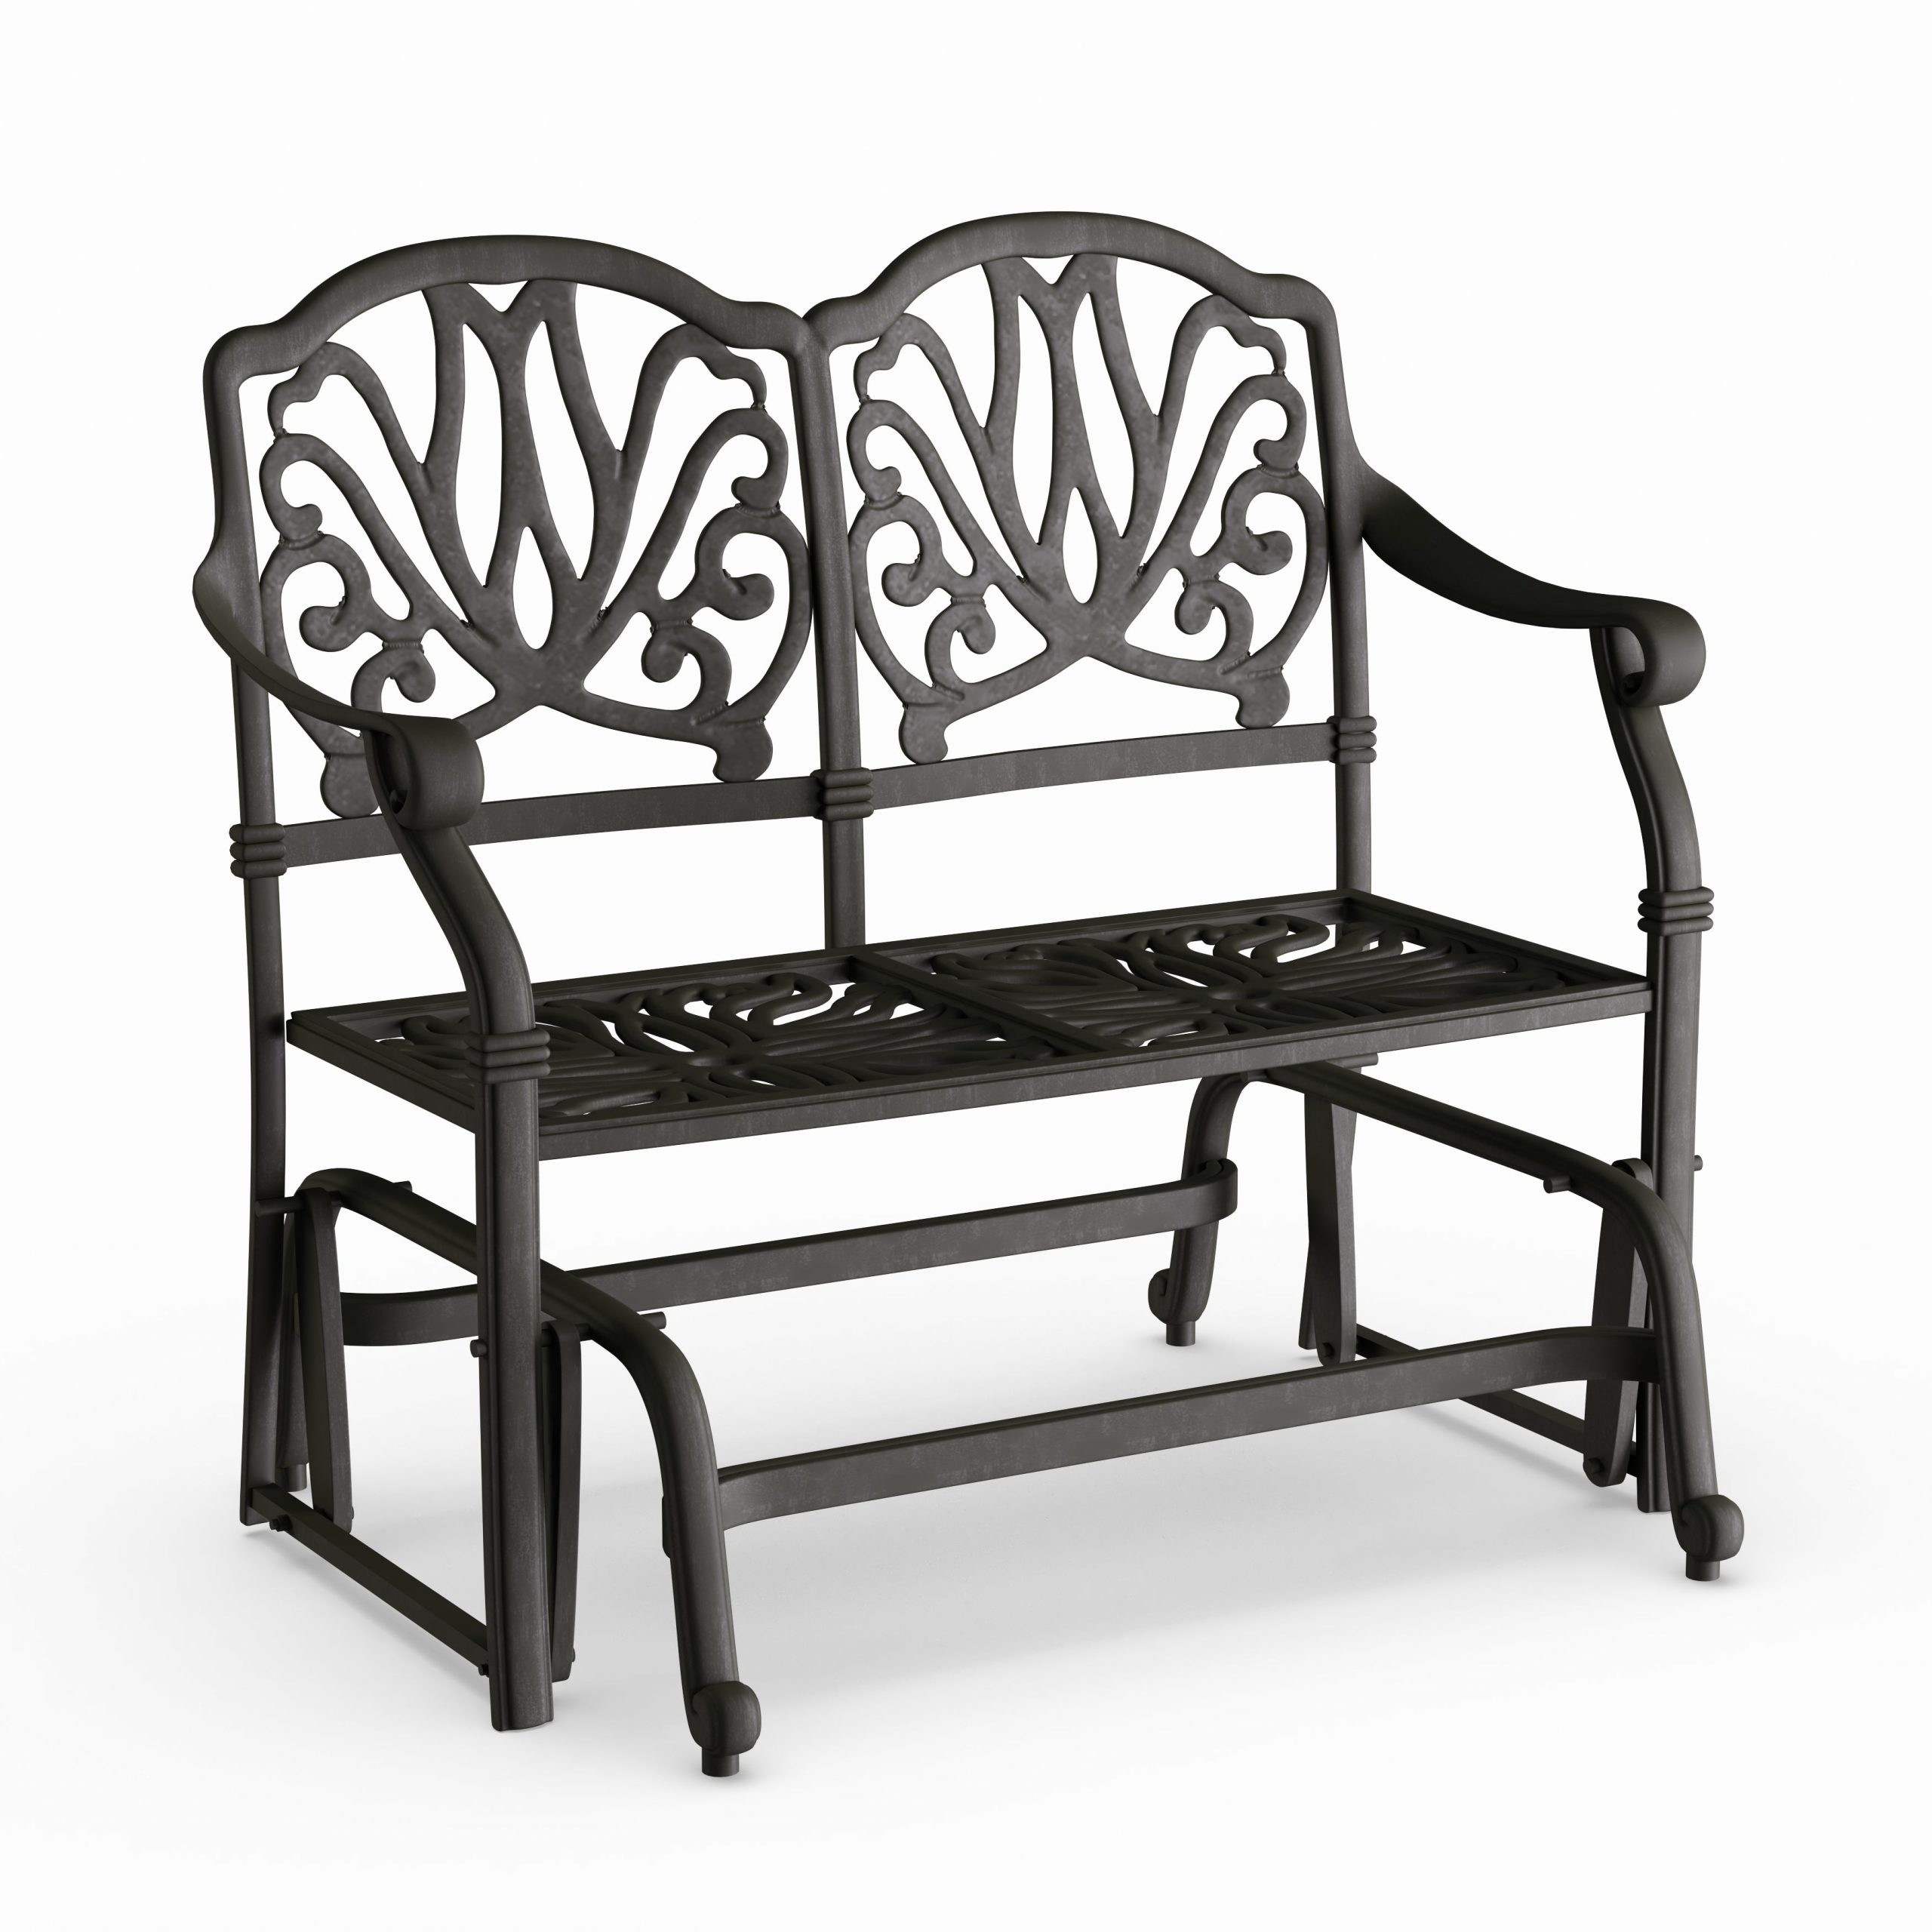 Havenside Home Avalon Cast Aluminum Glider Bench With Seat Cushion Pertaining To Aluminum Glider Benches With Cushion (View 15 of 25)